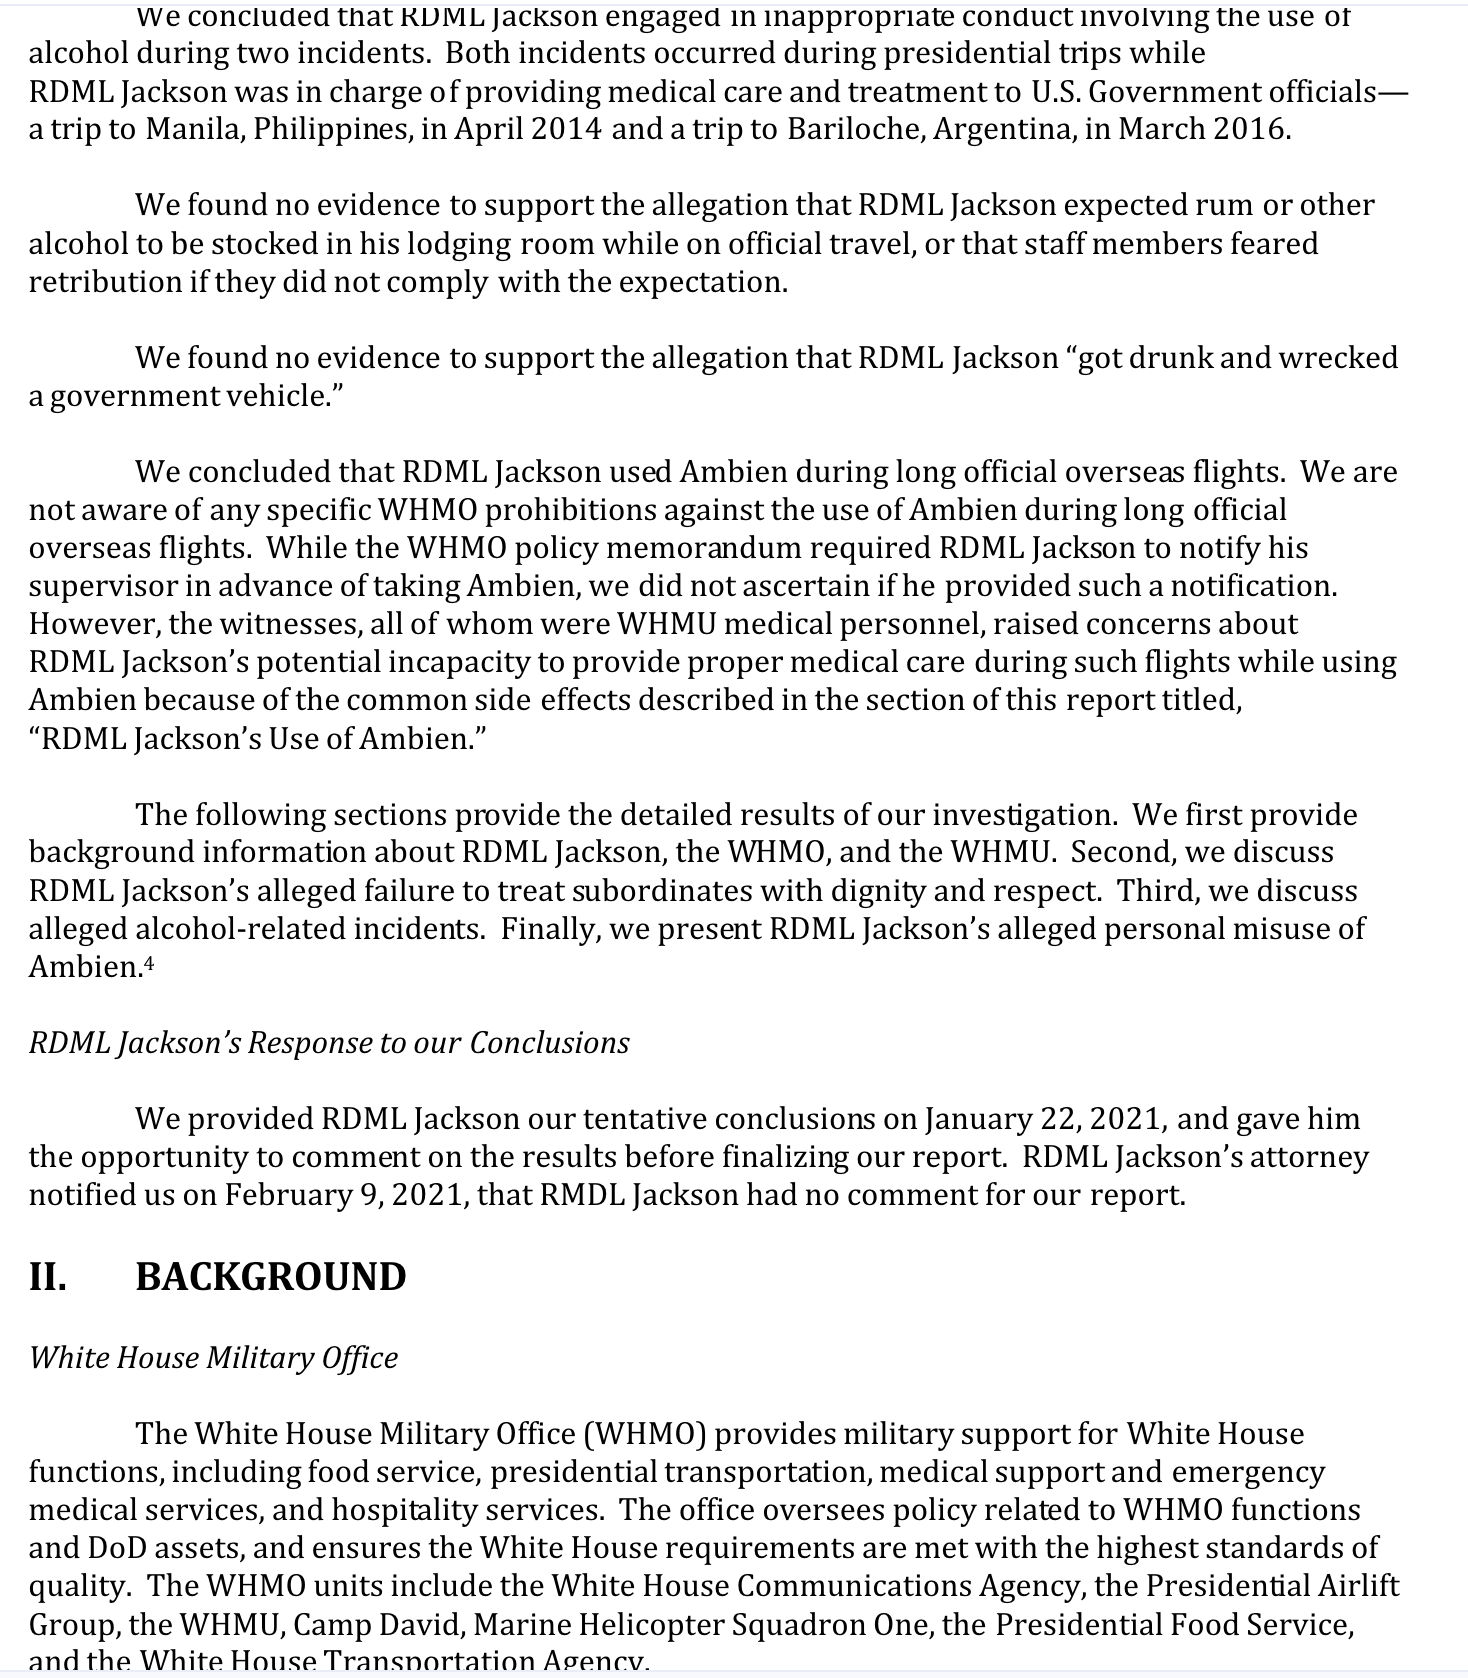 Screen-Shot-2021-03-03-at-2.40.47-PM U.S. Inspector General Condemns Republican Congressman For Widespread Abuse Corruption Crime Featured Politics Top Stories